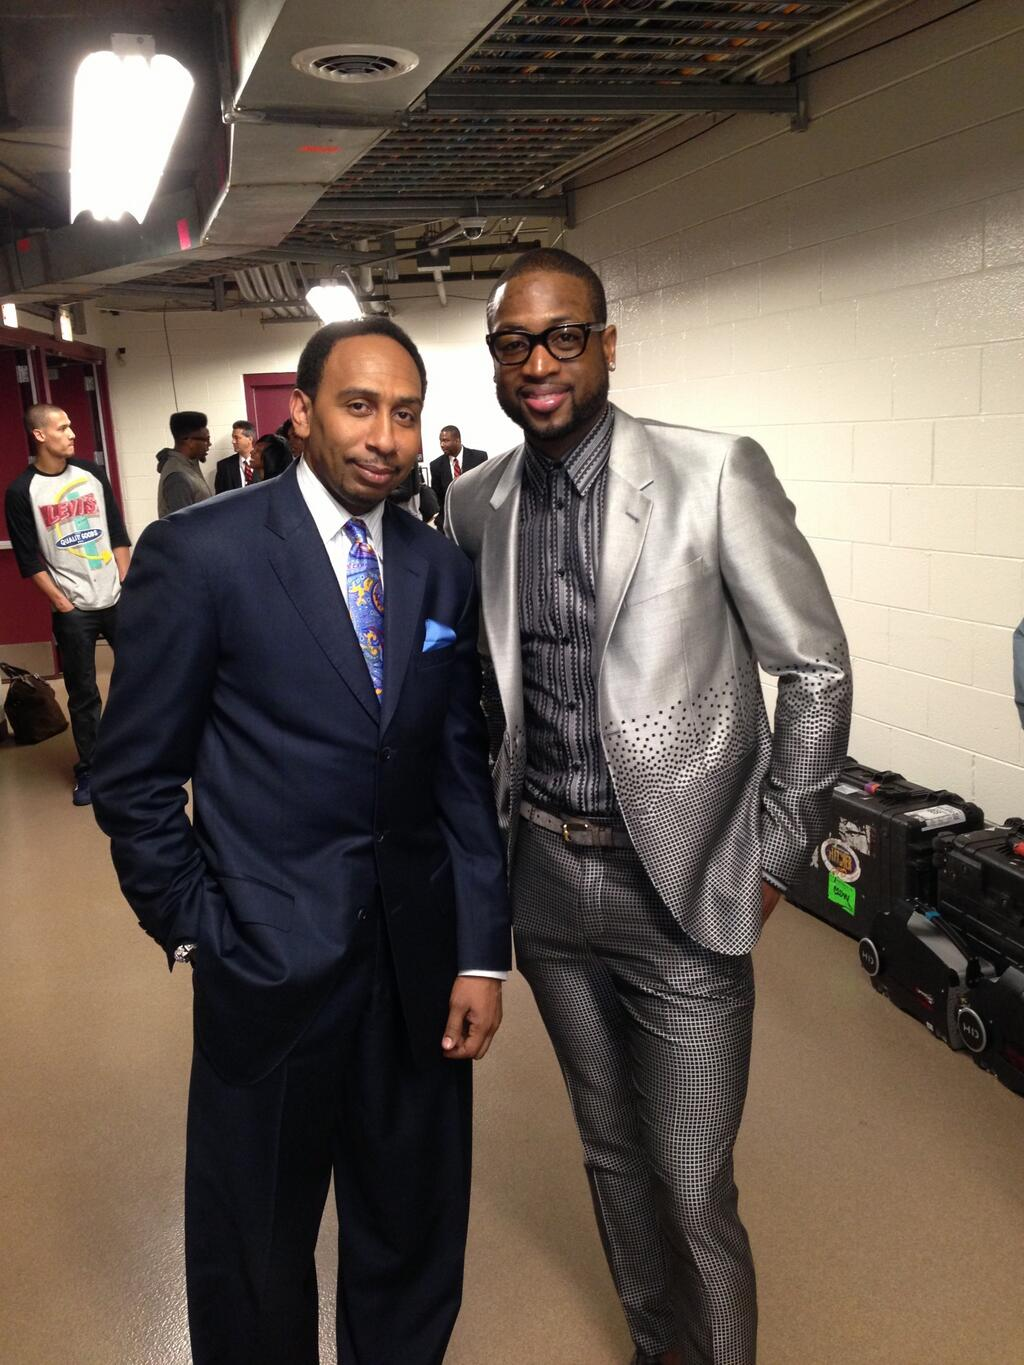 dwyane-wade-steven-a-smith-2013-nba-playoffs-fashion-game-3-round-2